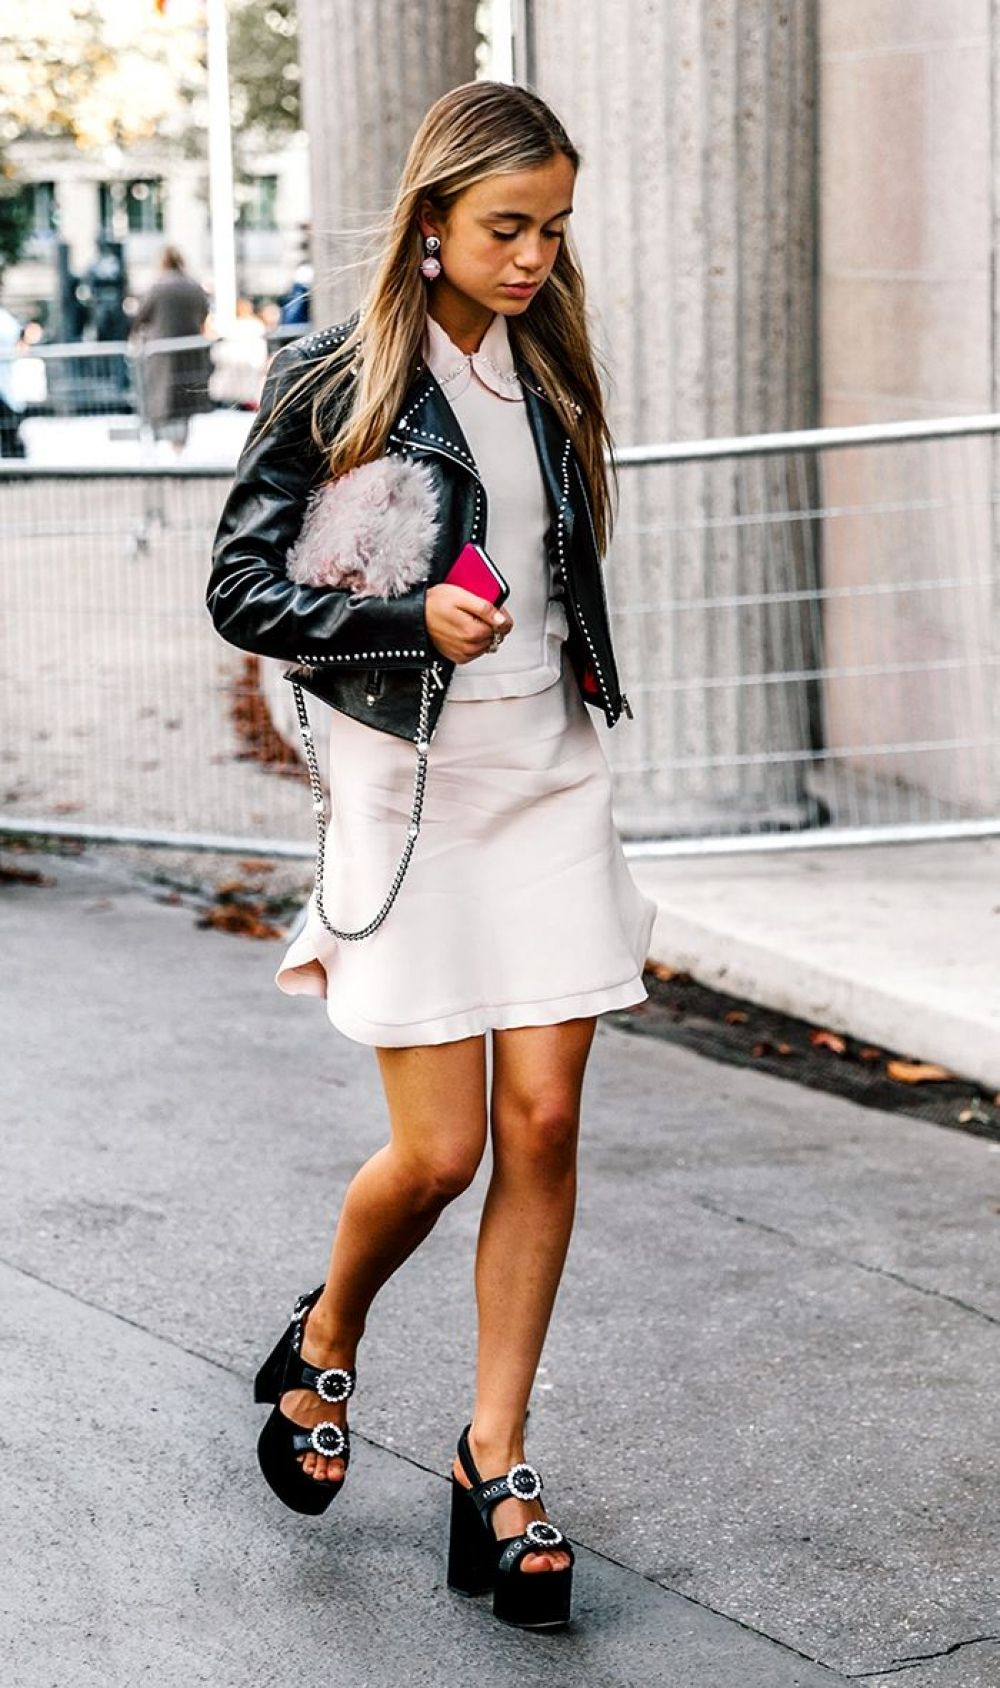 a0cbe6187b0 25 Stunning Knee Length Outfit Ideas To Try - Instaloverz